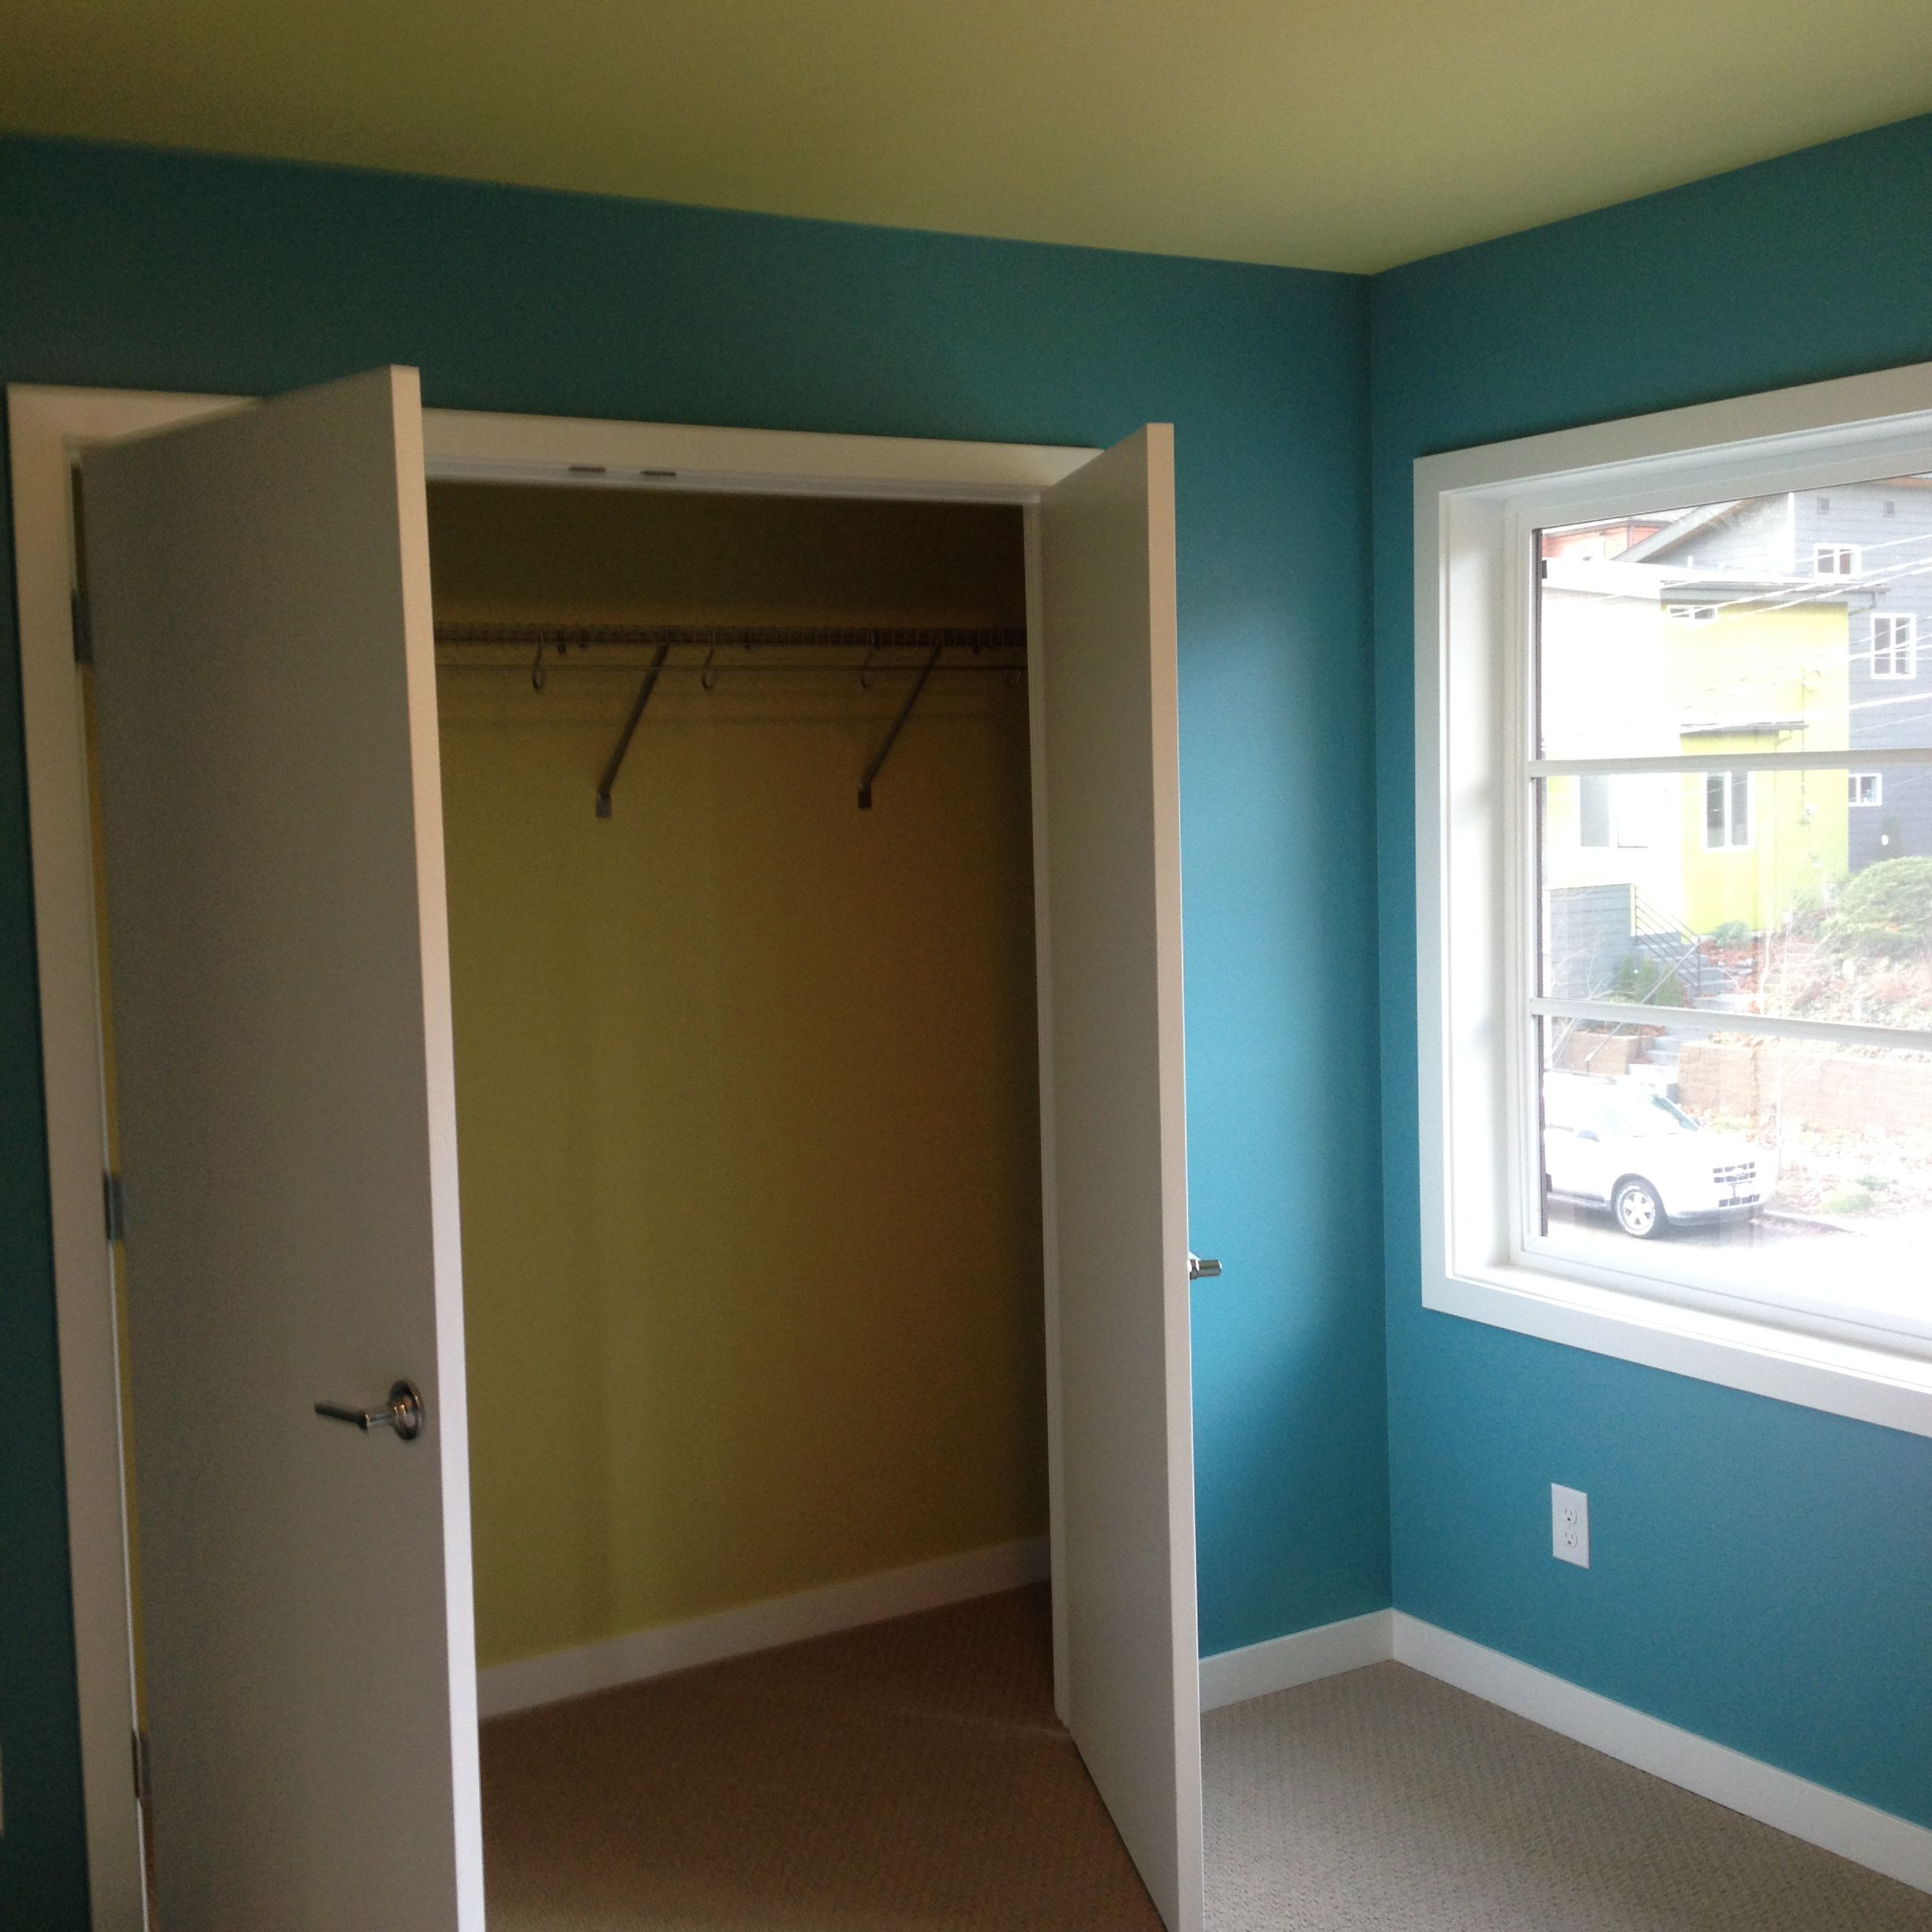 Wythe Blue Sherwin Williams One Of My Favorite Color Combos Benjamin Moore Dill Pickle And